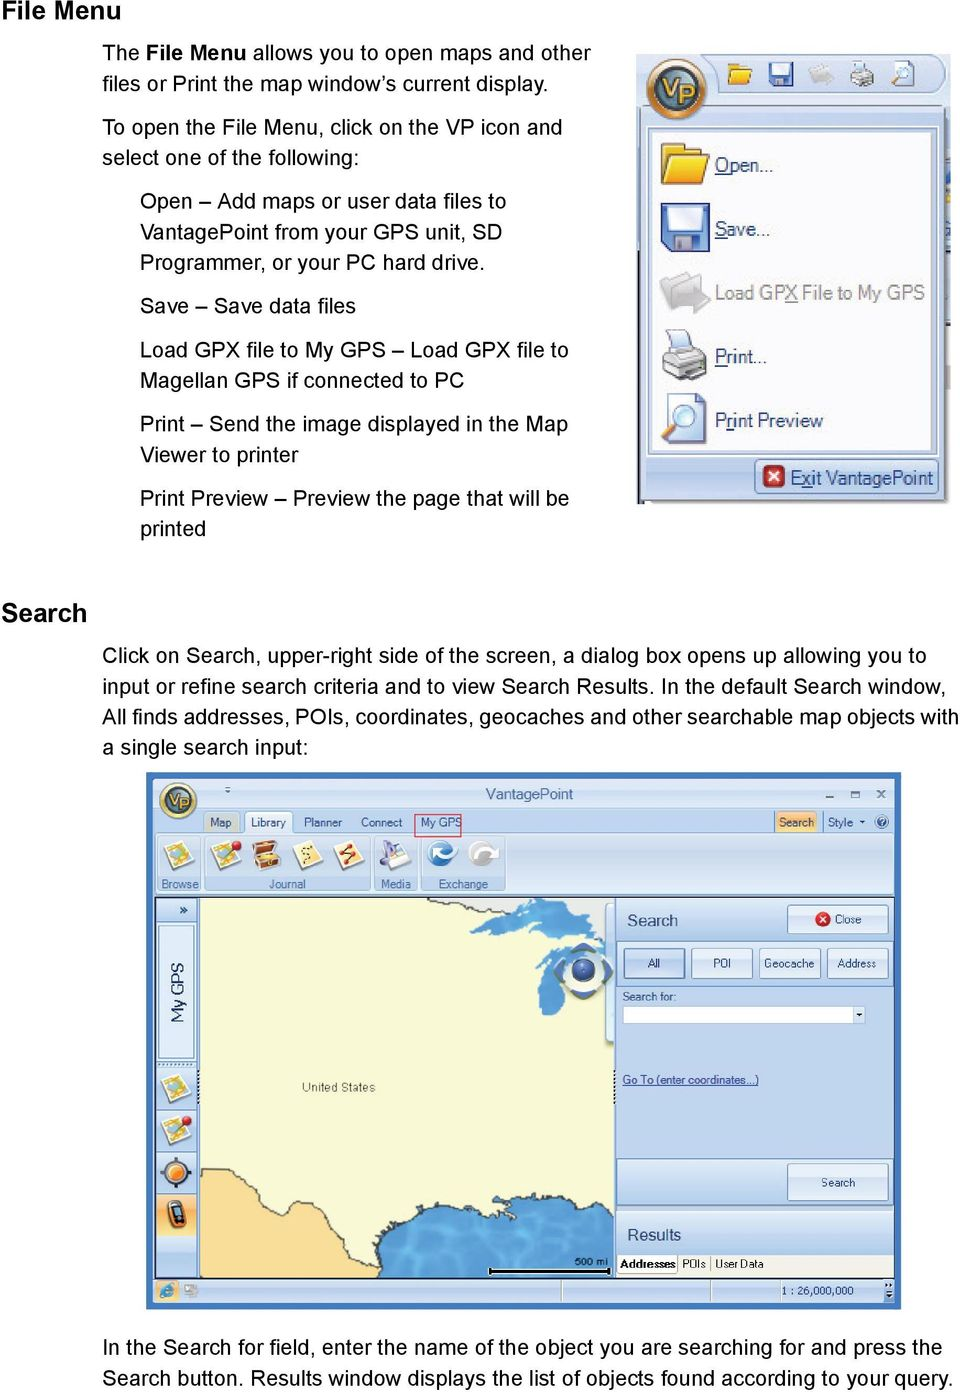 Save Save data files Load GPX file to My GPS Load GPX file to Magellan GPS if connected to PC Print Send the image displayed in the Map Viewer to printer Print Preview Preview the page that will be